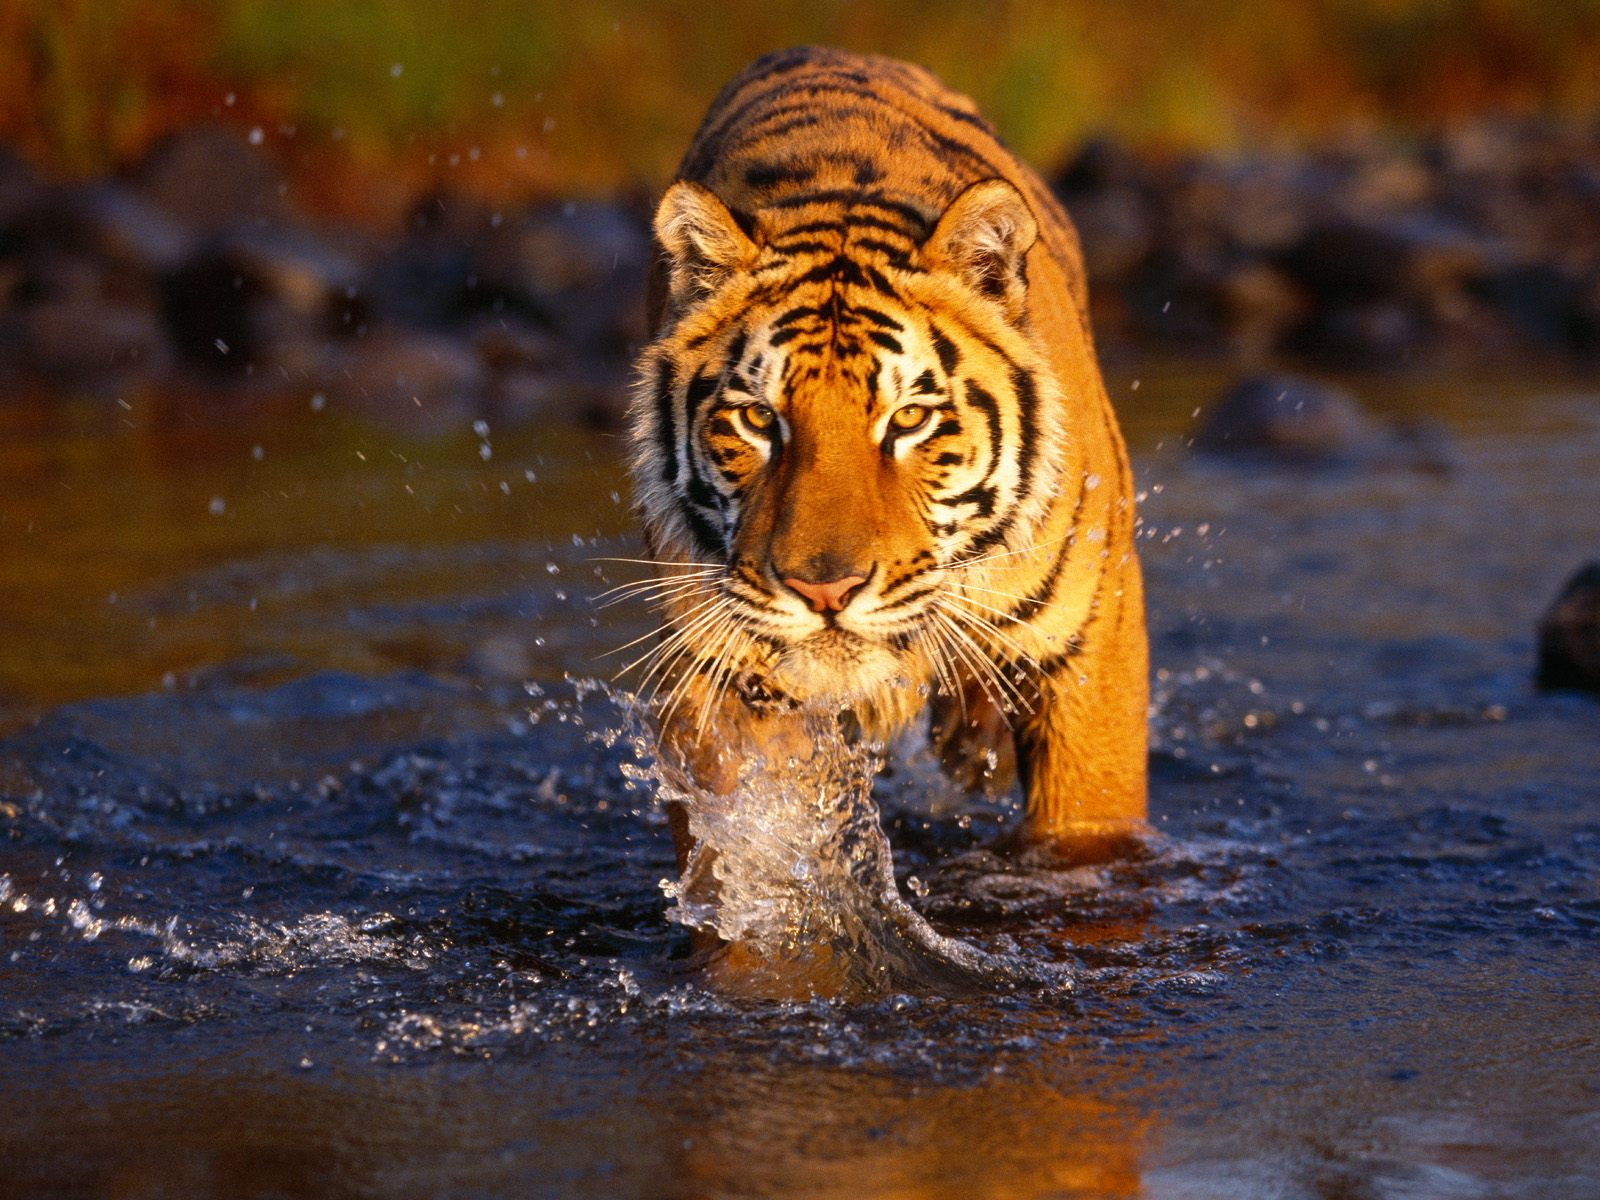 http://1.bp.blogspot.com/-ETmUsW2FHu8/TZVv-UpBoCI/AAAAAAAAI2U/ar95YIl-SQ4/s1600/tiger_wallpapers_hd_top-desktop-tiger-wallpapers-hd.jpg